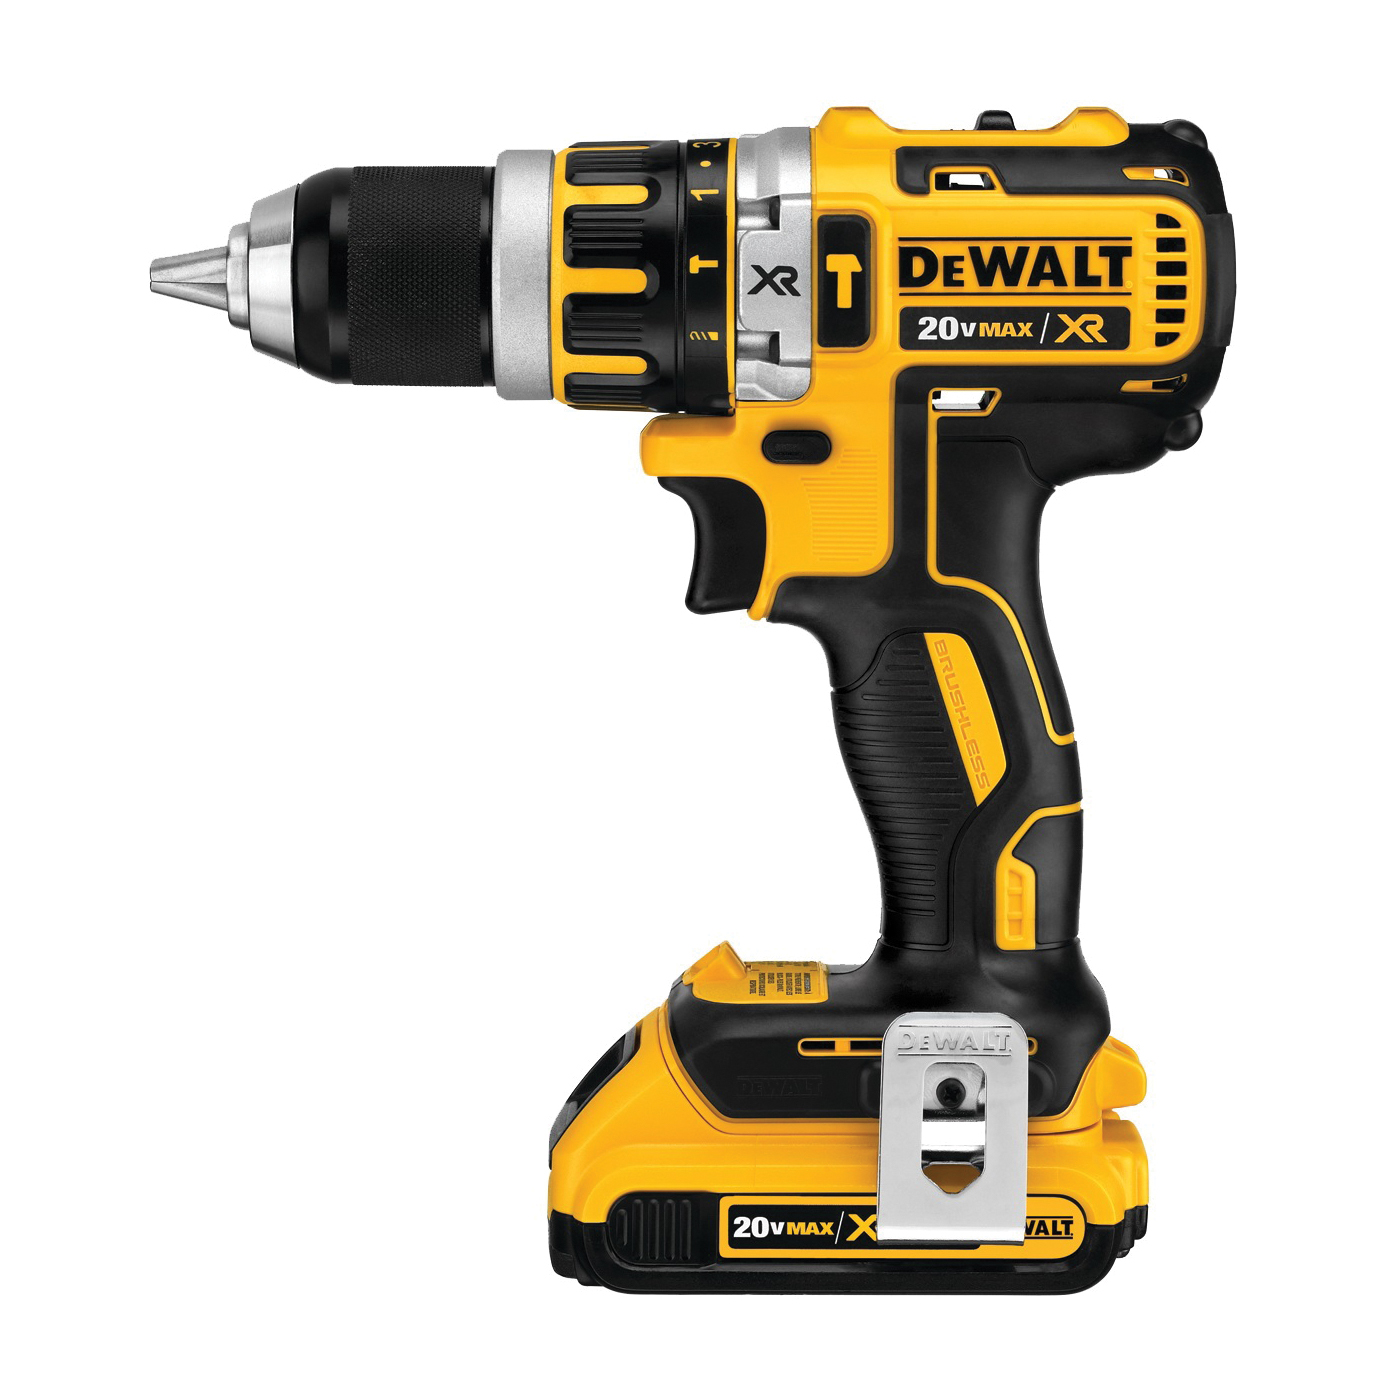 Picture of DeWALT DCD796D2/DCD795D2 Hammer Drill Kit, Kit, 20 V Battery, 2 Ah, 1/2 in Chuck, Ratcheting Chuck